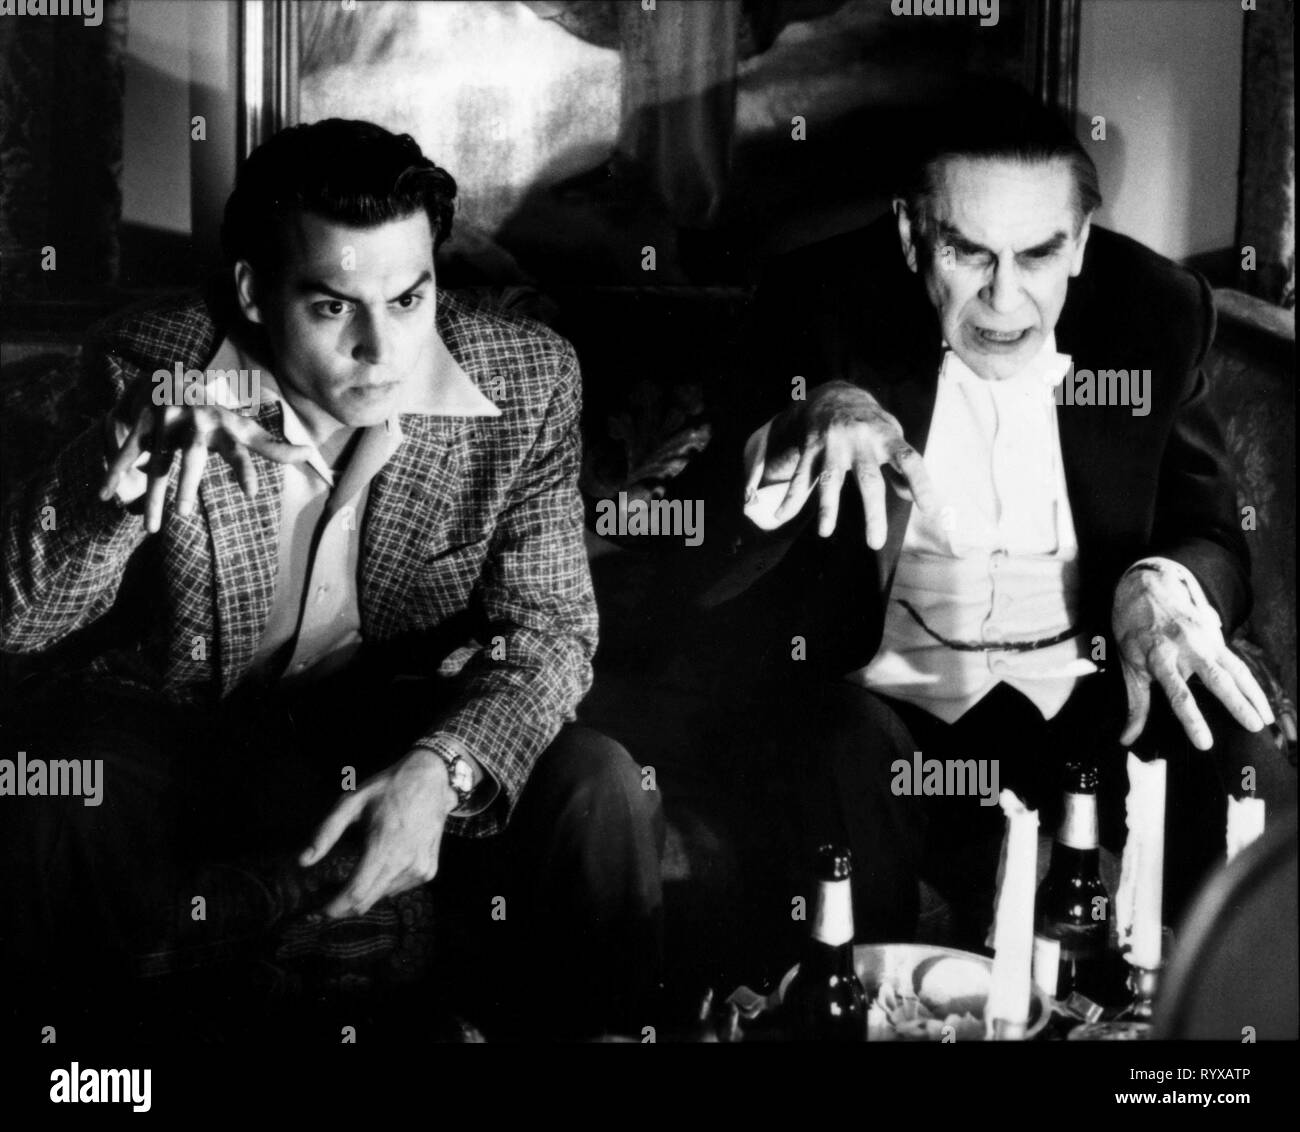 JOHNNY DEPP, MARTIN LANDAU, ED WOOD, 1994 - Stock Image